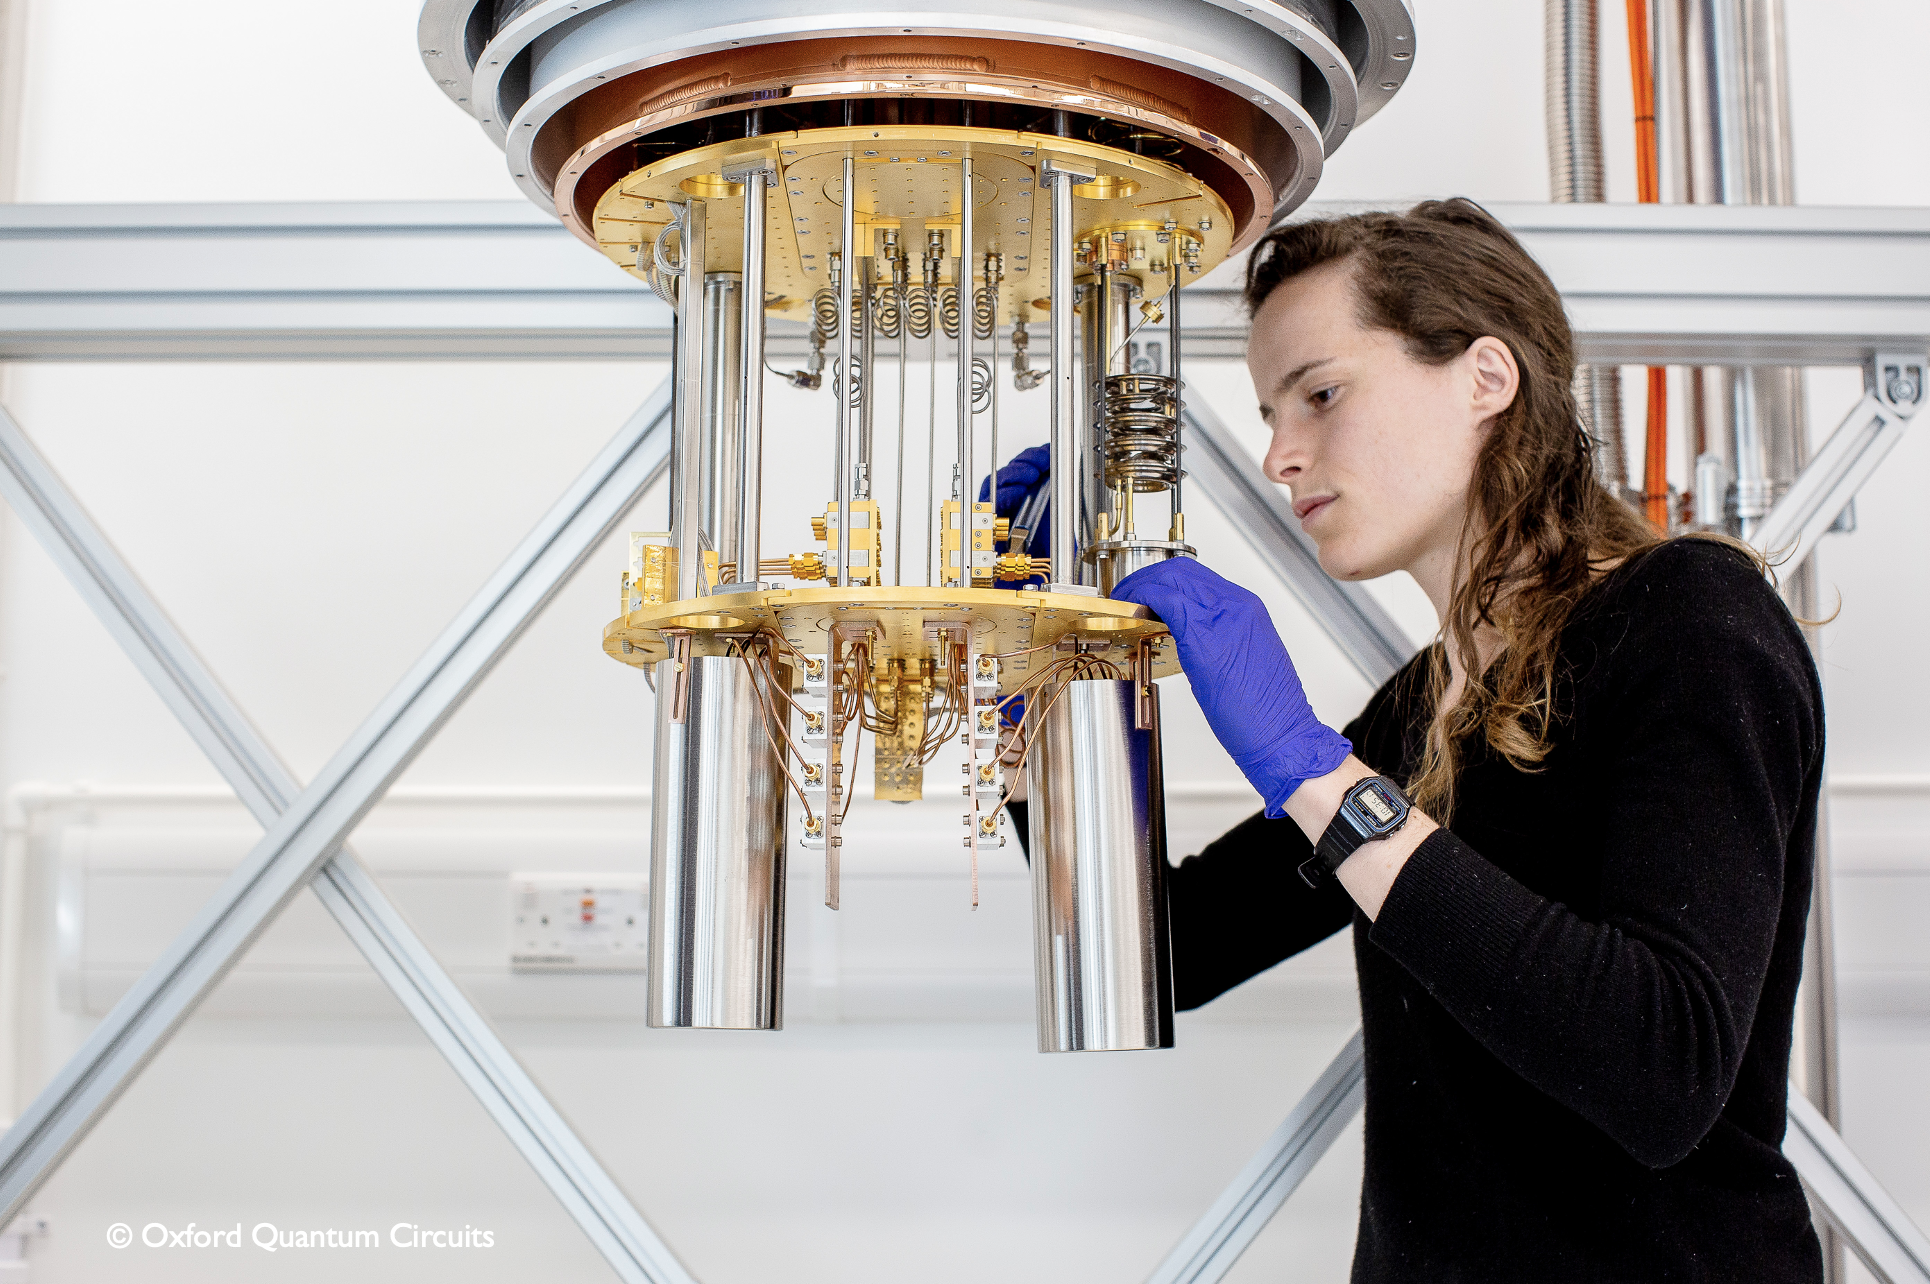 OQC delivers Europe's first Quantum Computing as-a-Service